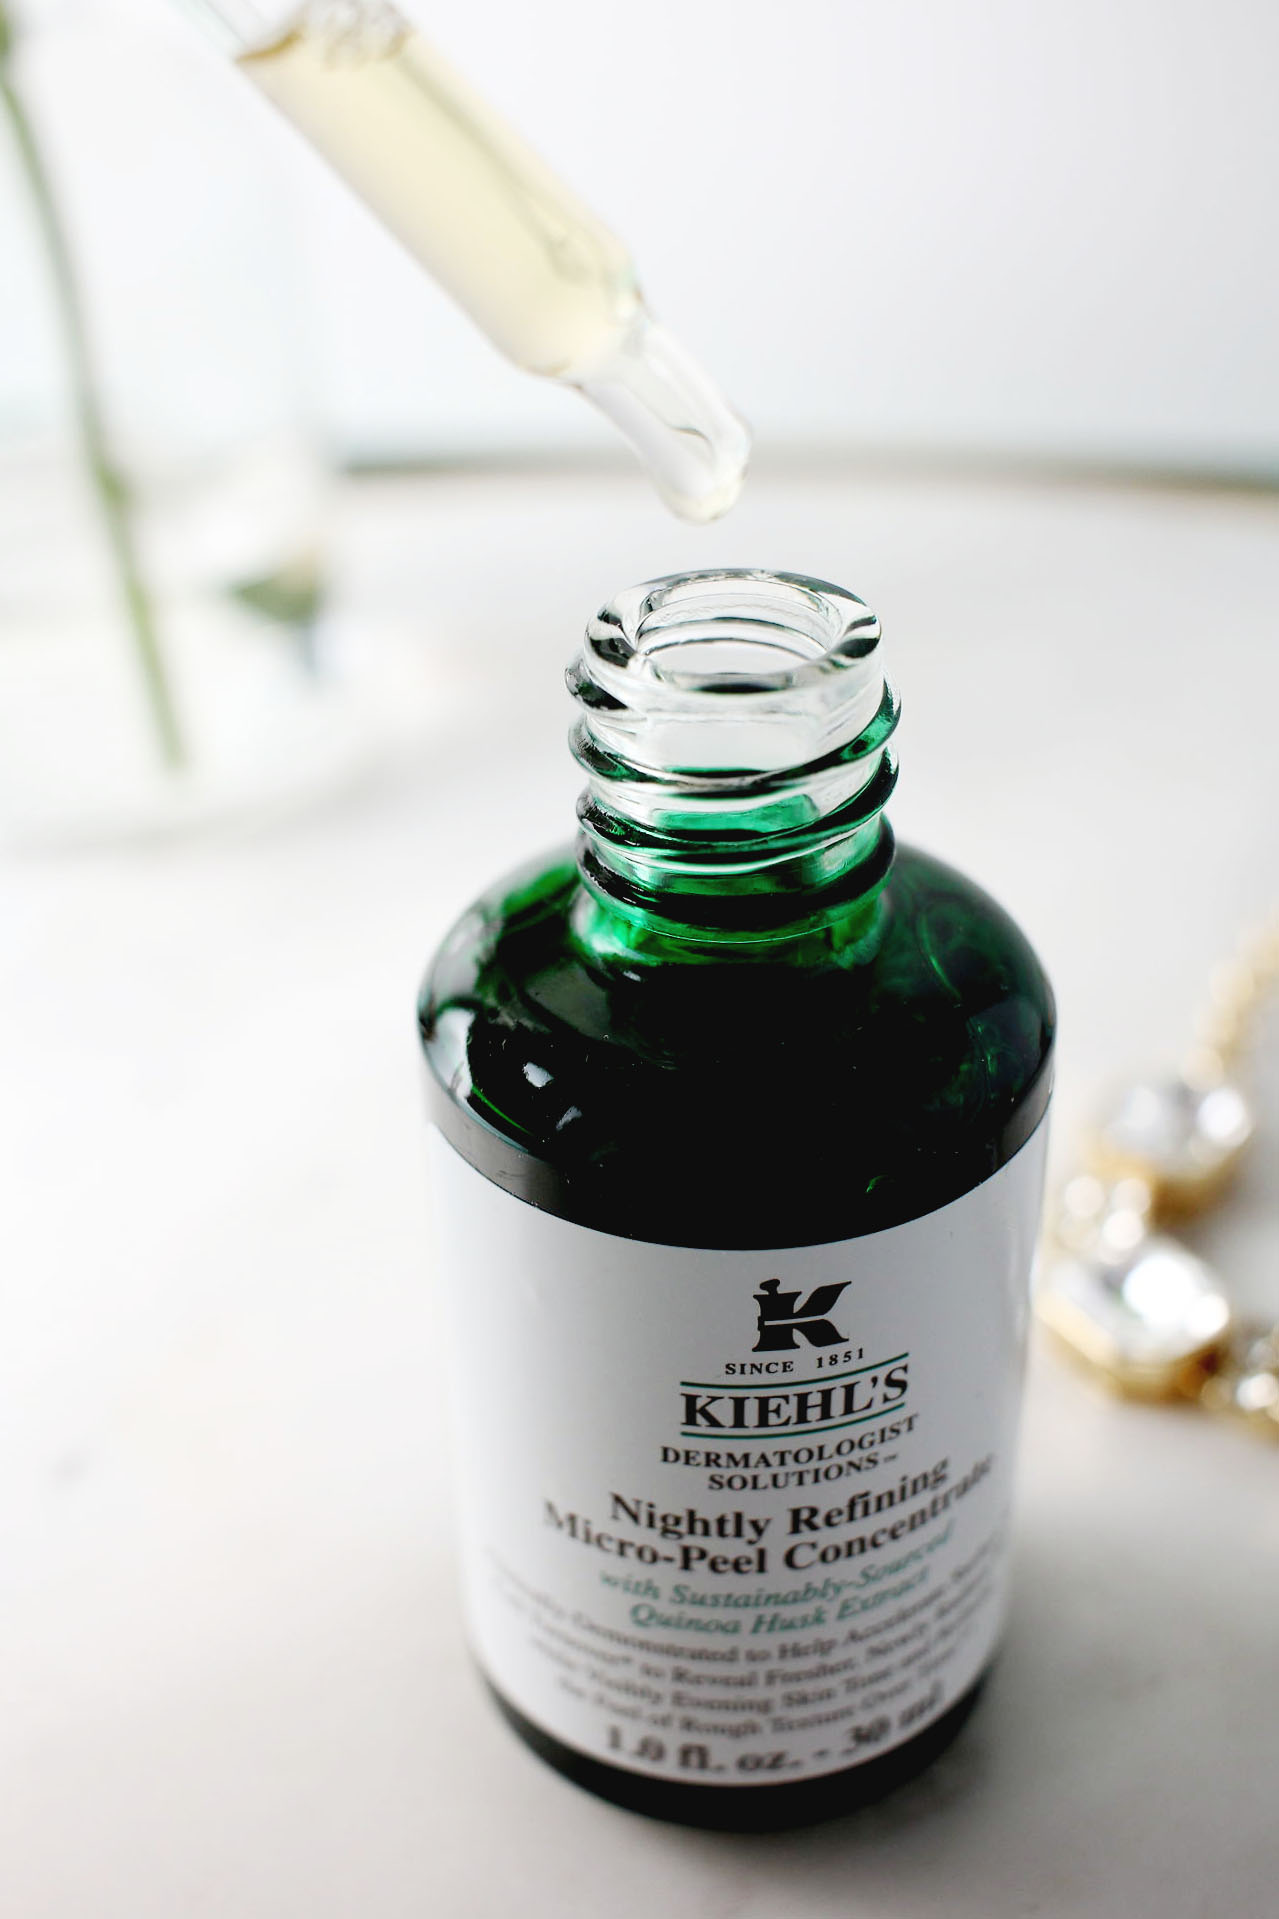 Dermatologist Solutions™ Nightly Refining Micro-Peel Concentrate by Kiehl's